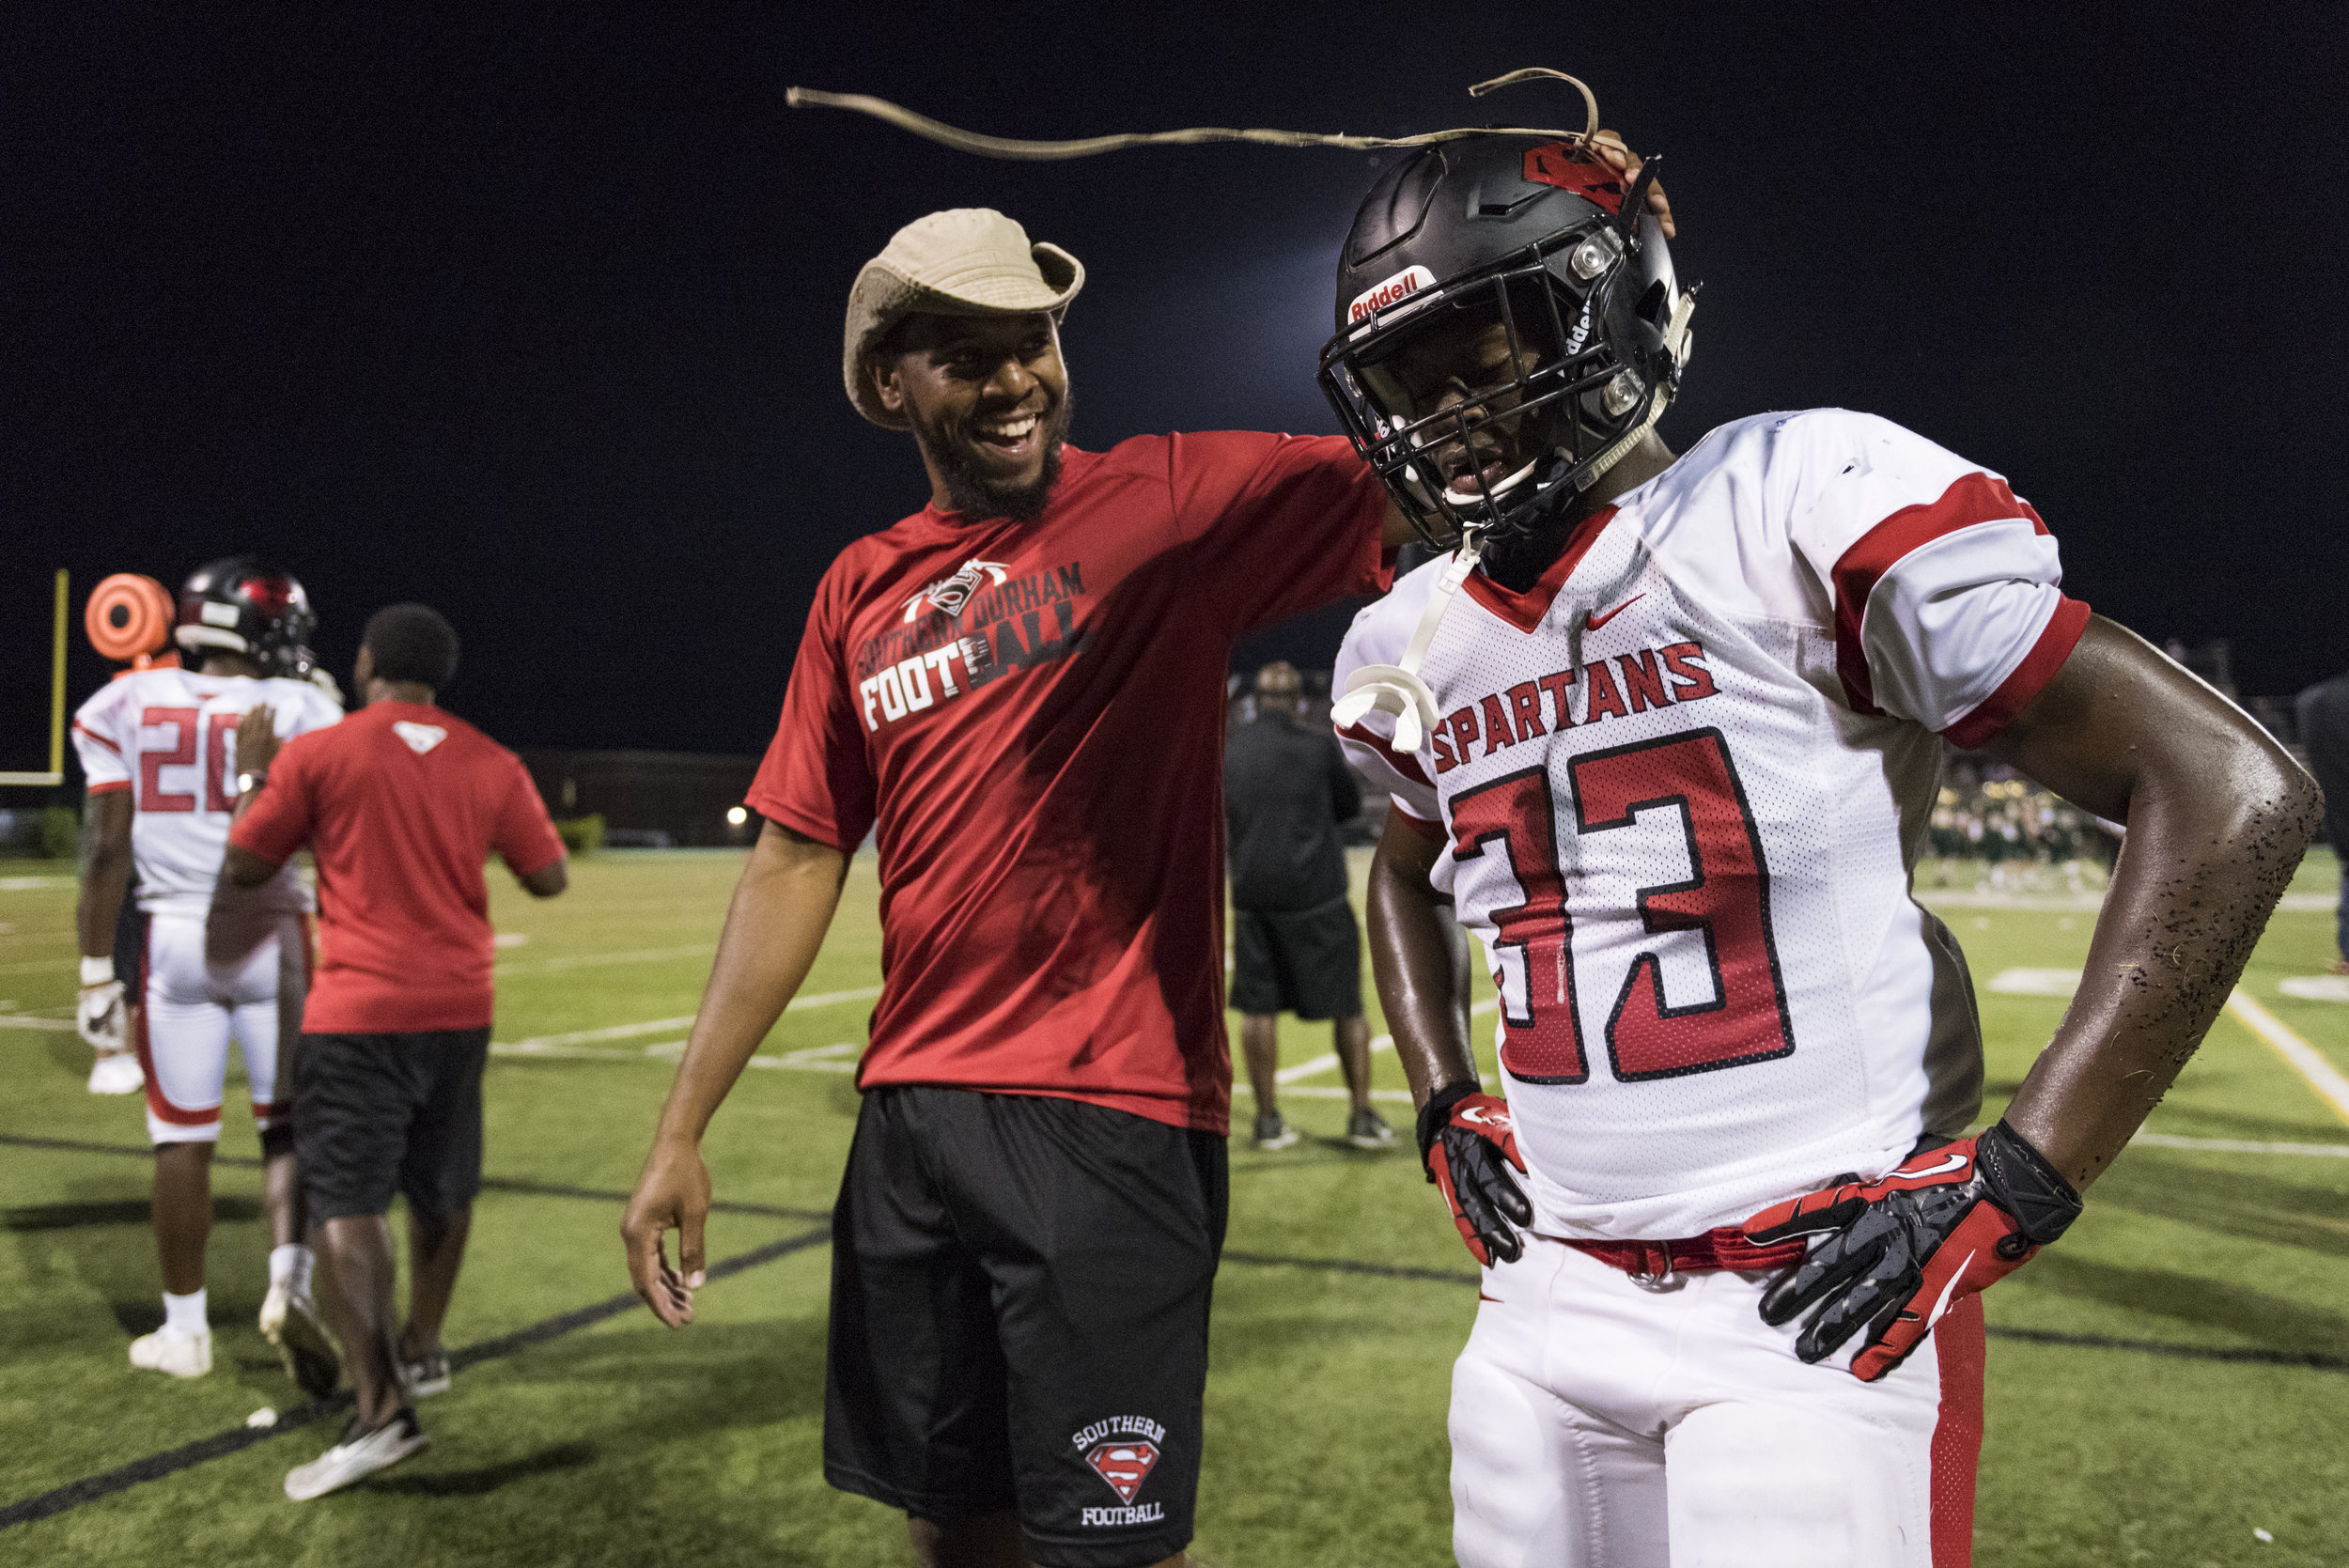 Southern Durham assistant coach Chris Smith celebrates with linebacker Jakhari Dowd (33) after a big play against Cardinal Gibbons High School. The Spartans had 18 coaches on staff this year, mostly comprised of past players that want to give back to their high school team.